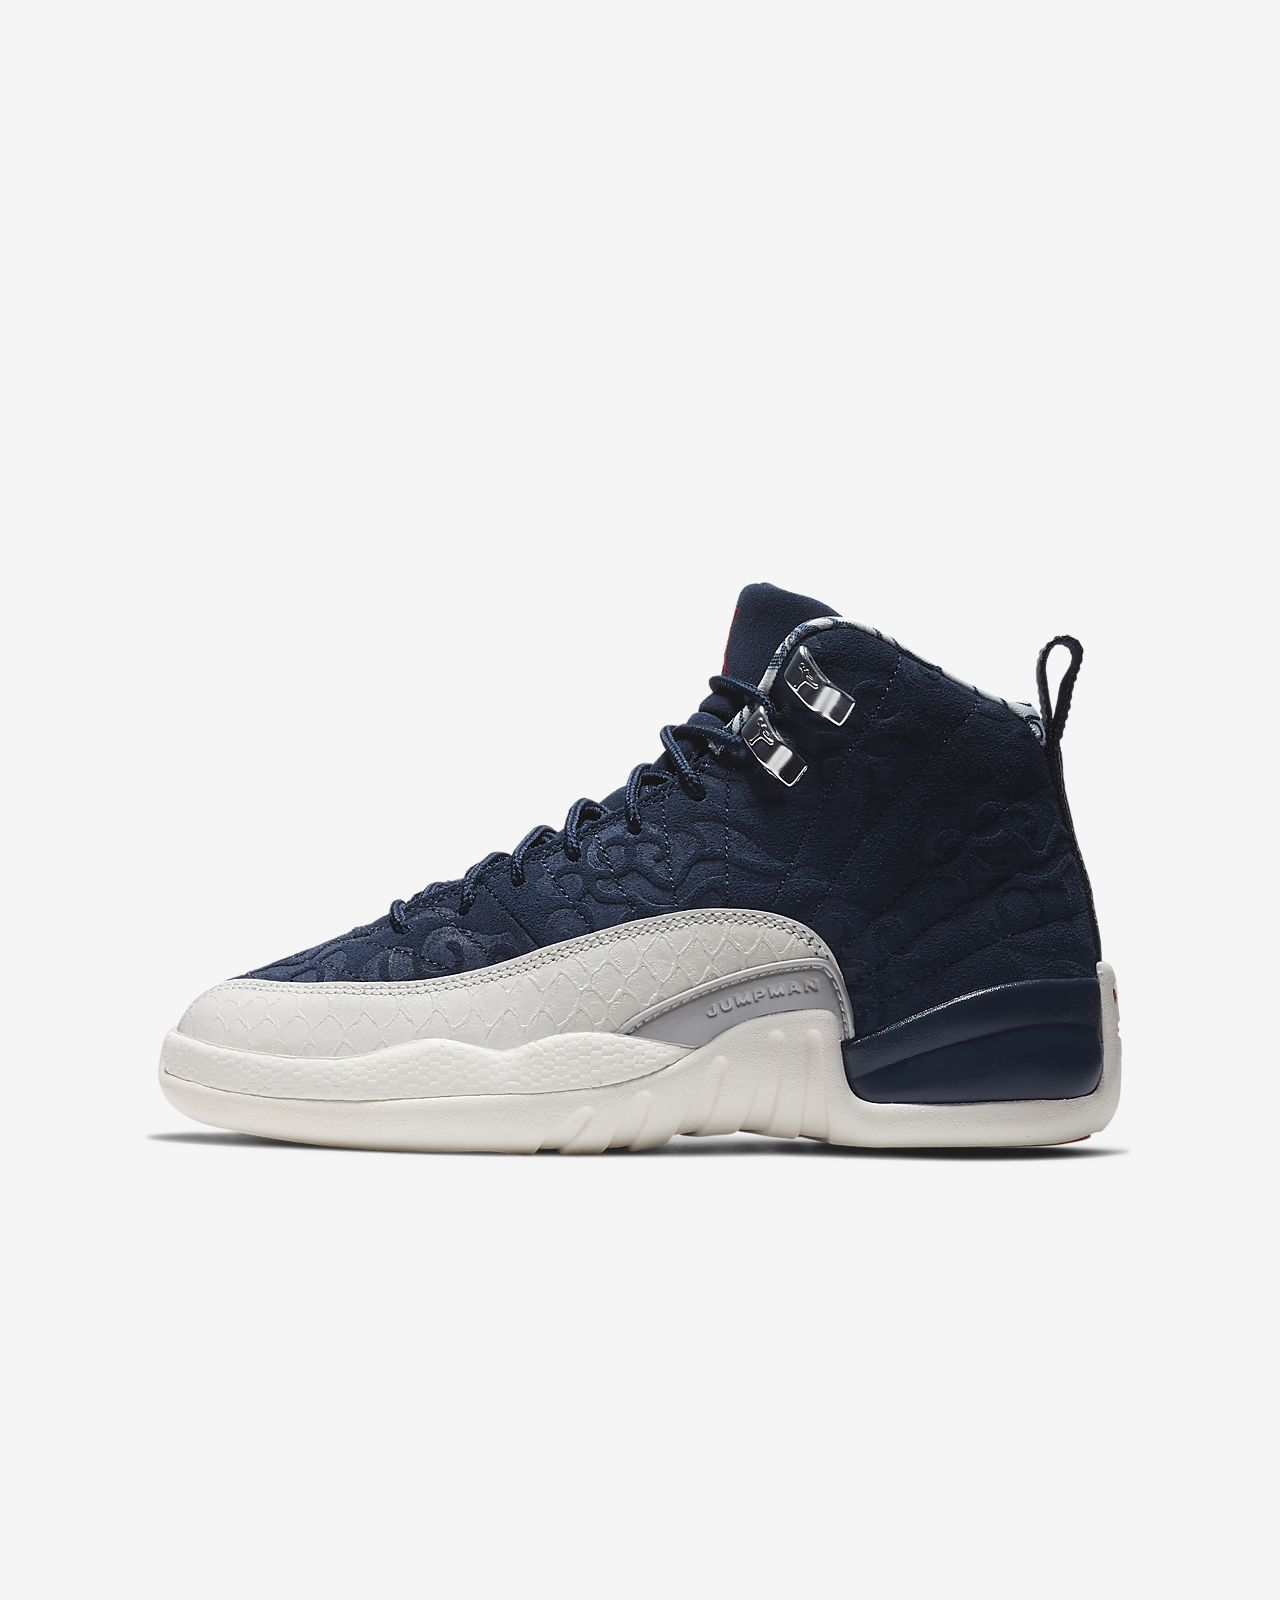 timeless design 92e2a 5e2da Air Jordan 12 Retro Premium Older Kids' Shoe